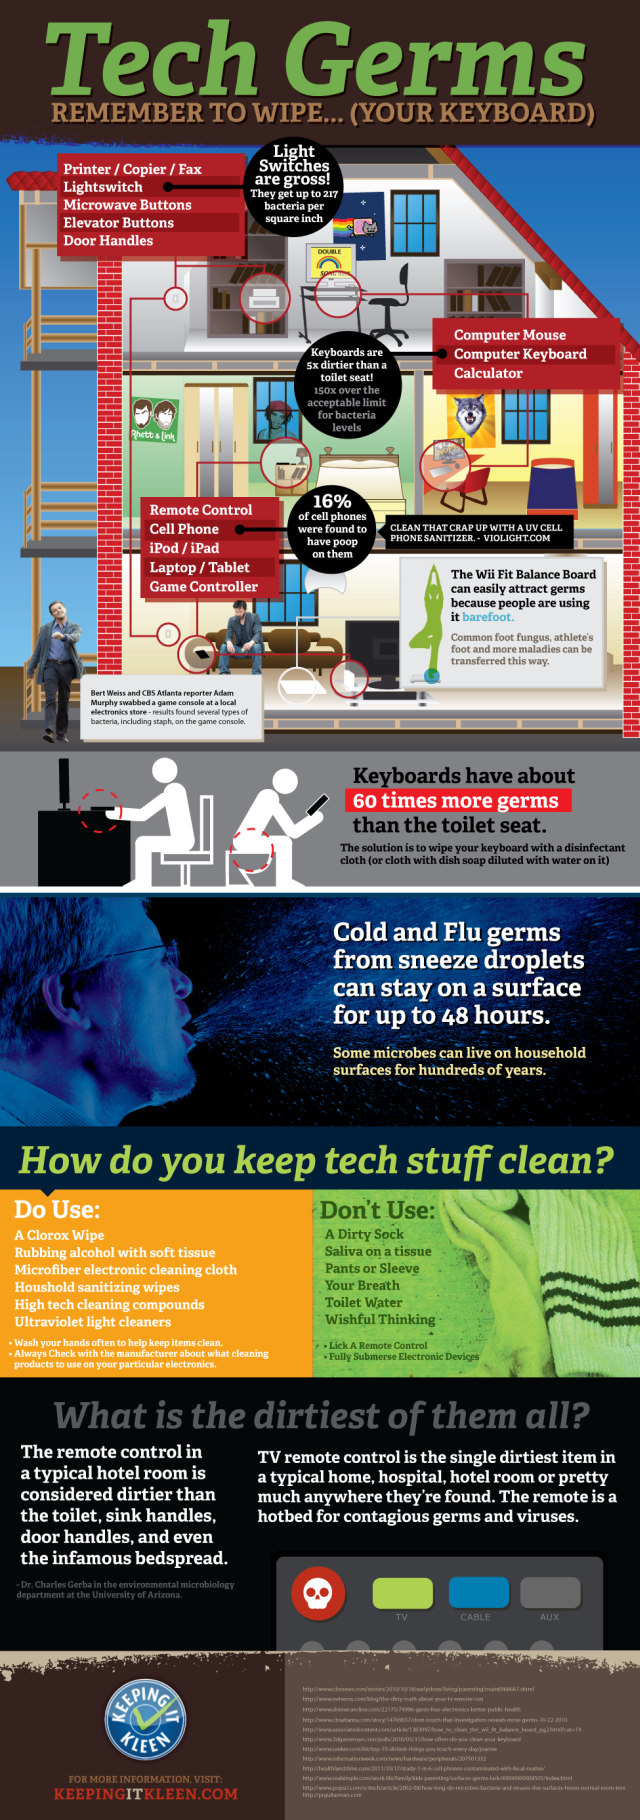 Tech Germs Infographic